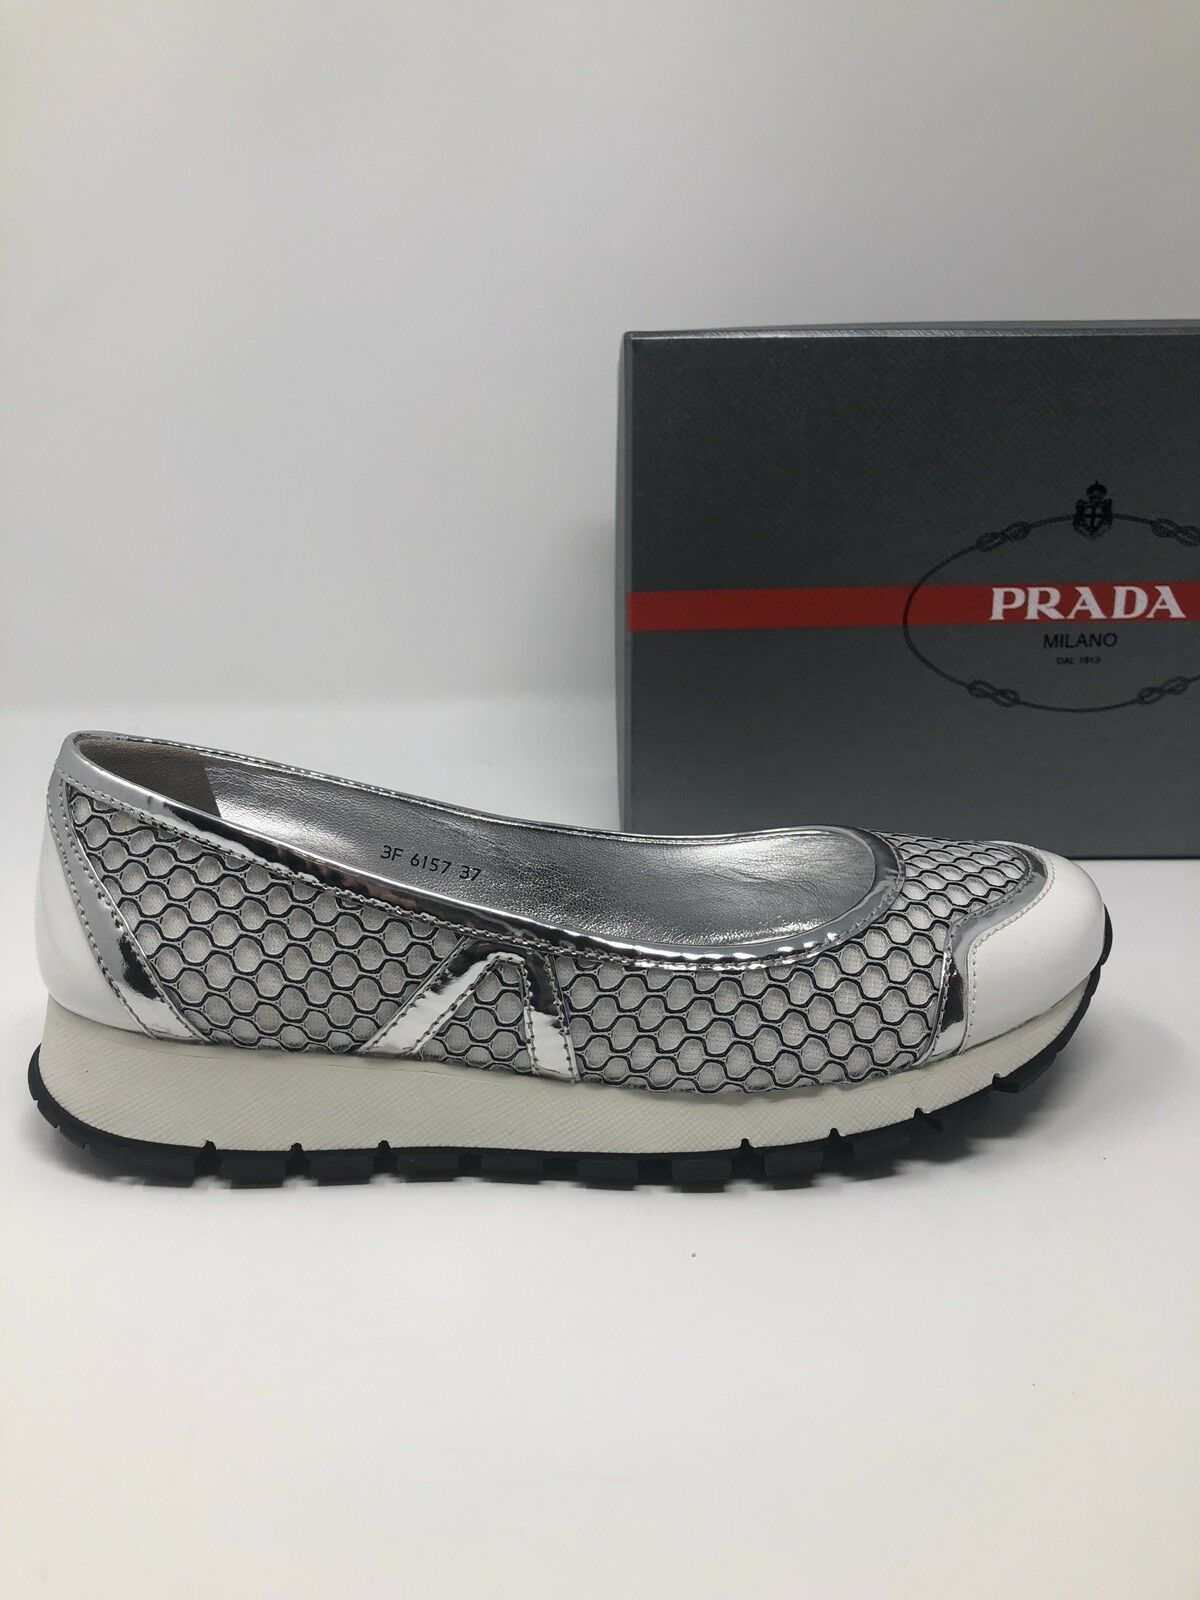 750 New PRADA Womens shoes Ladies White Silver Sneakers Size 9 US 39 EU